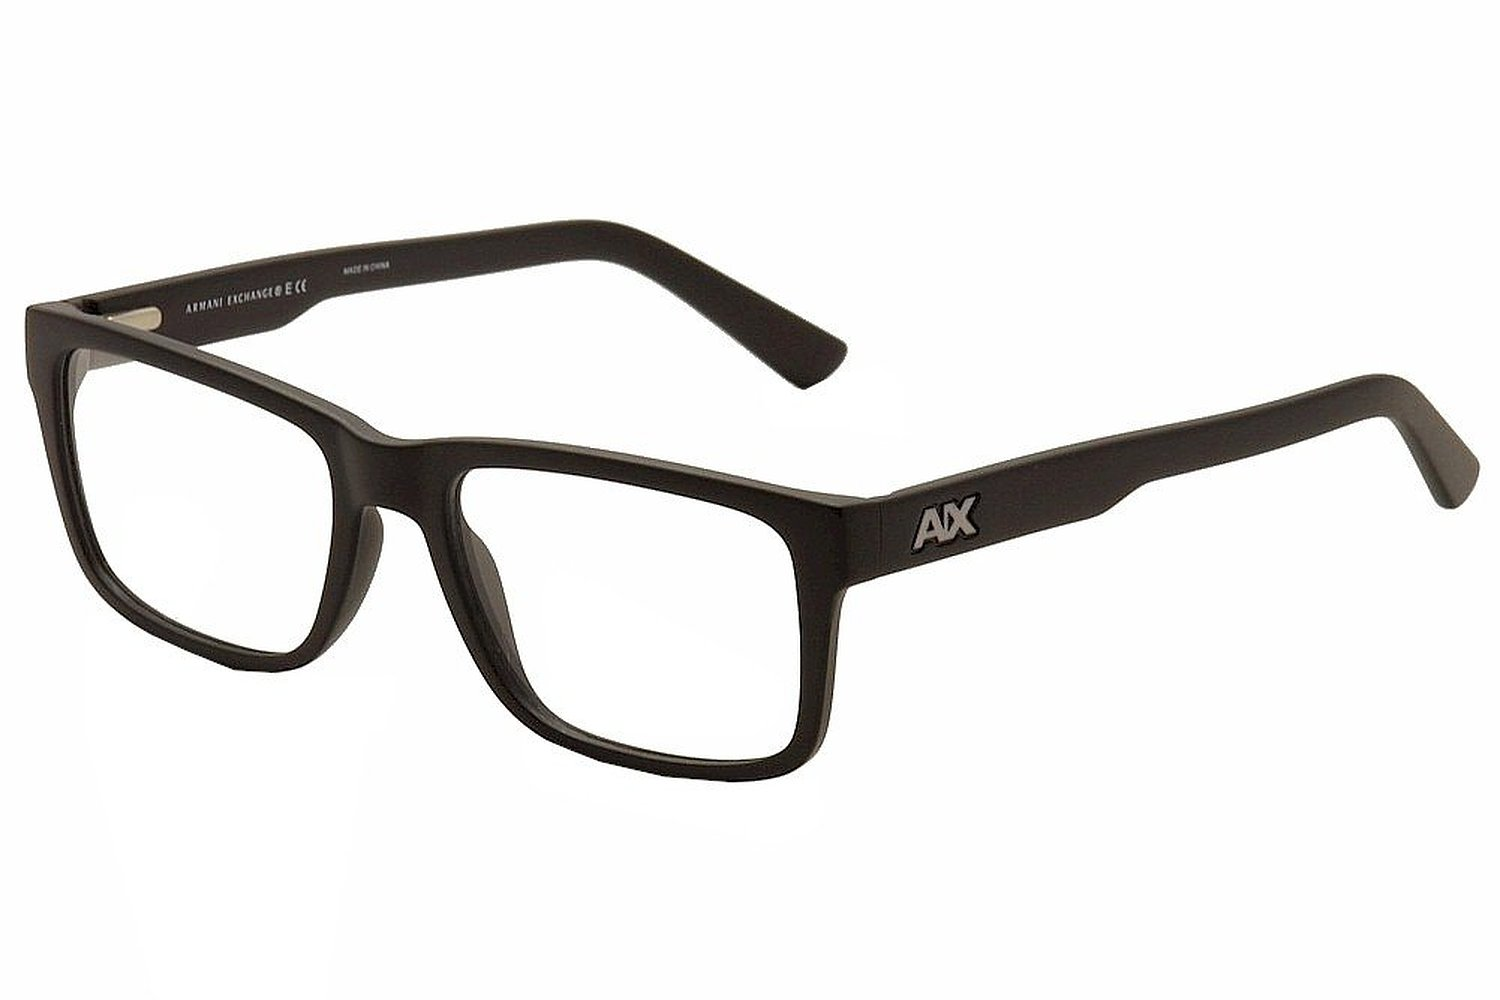 Armani Exchange AX 3016 Men's Eyeglasses